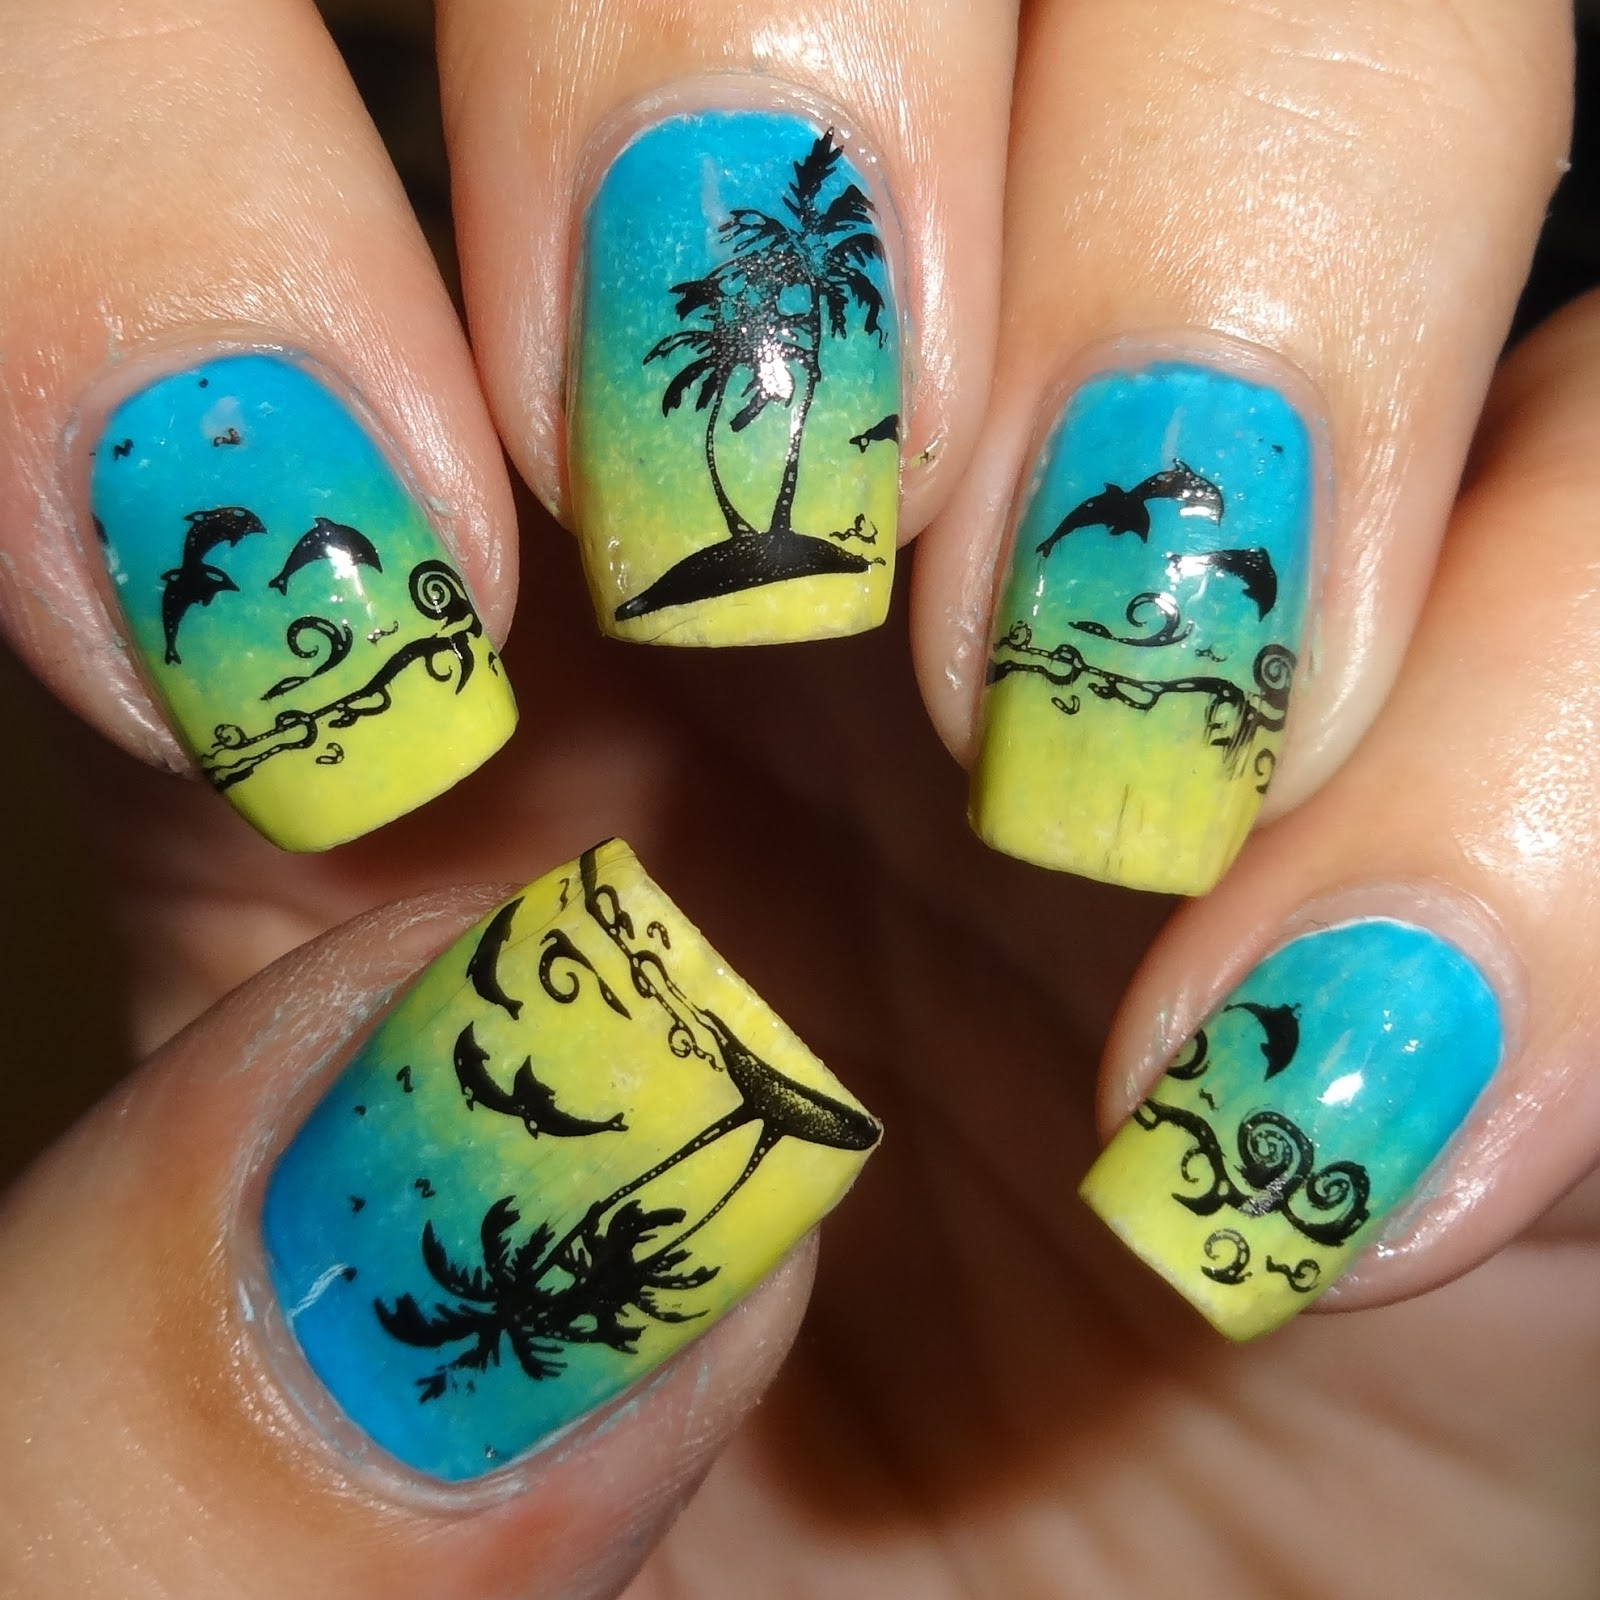 Wendys delights moyou nail plate 126 moyou nails stamping moyou nail plate 126 moyou nails stamping accessories prinsesfo Choice Image